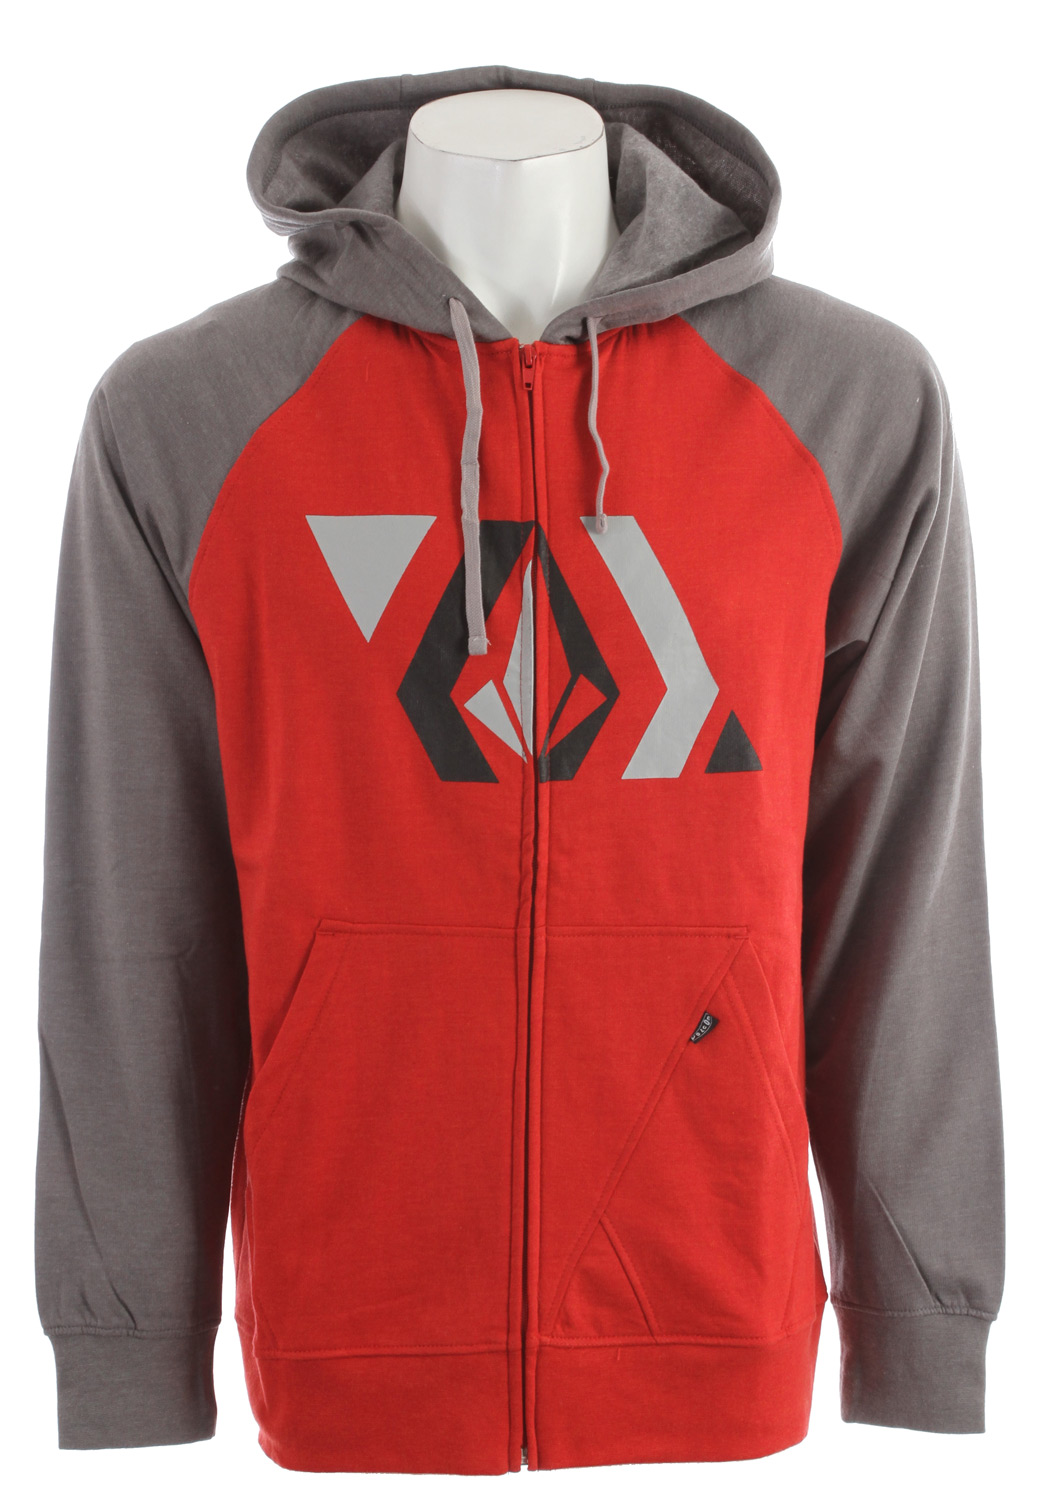 Surf Key Features of the Volcom Stone Shapes Hoodie: Heather slim zip hood Contrast hood and raglan sleeves 2-tone drawcords Stone panel pocket detail Pre-Shrunk Slim fit 55% Cotton / 45% Polyester heather fleece, 220-230gm - $35.95